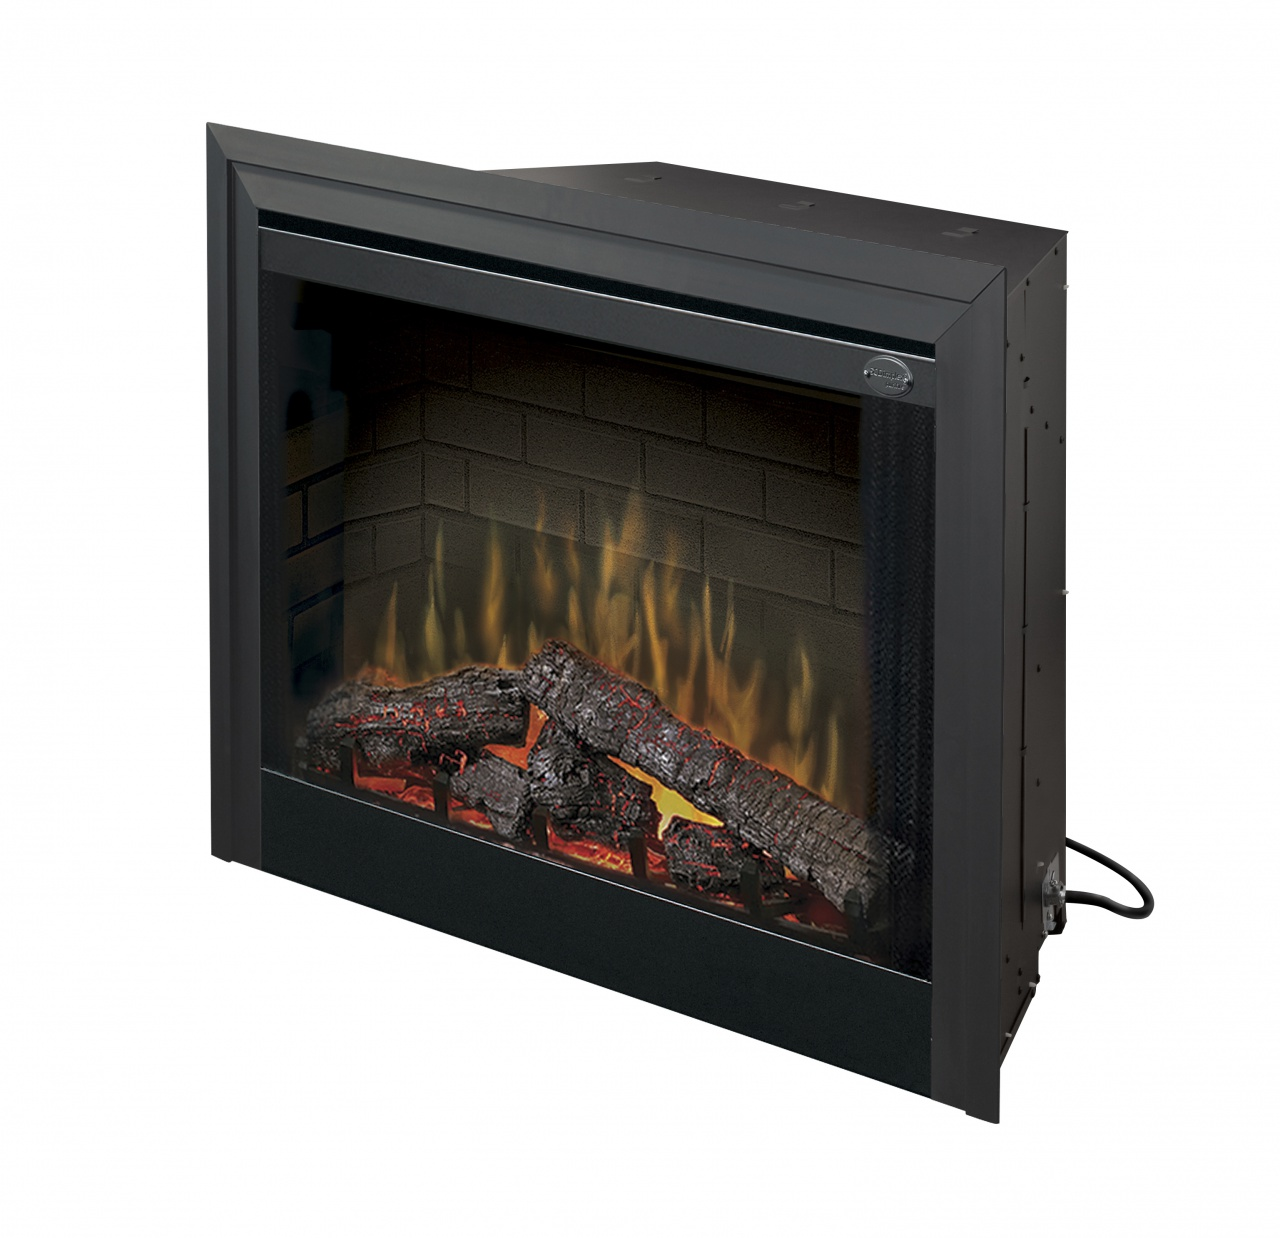 33 Deluxe Built-in Electric Firebox